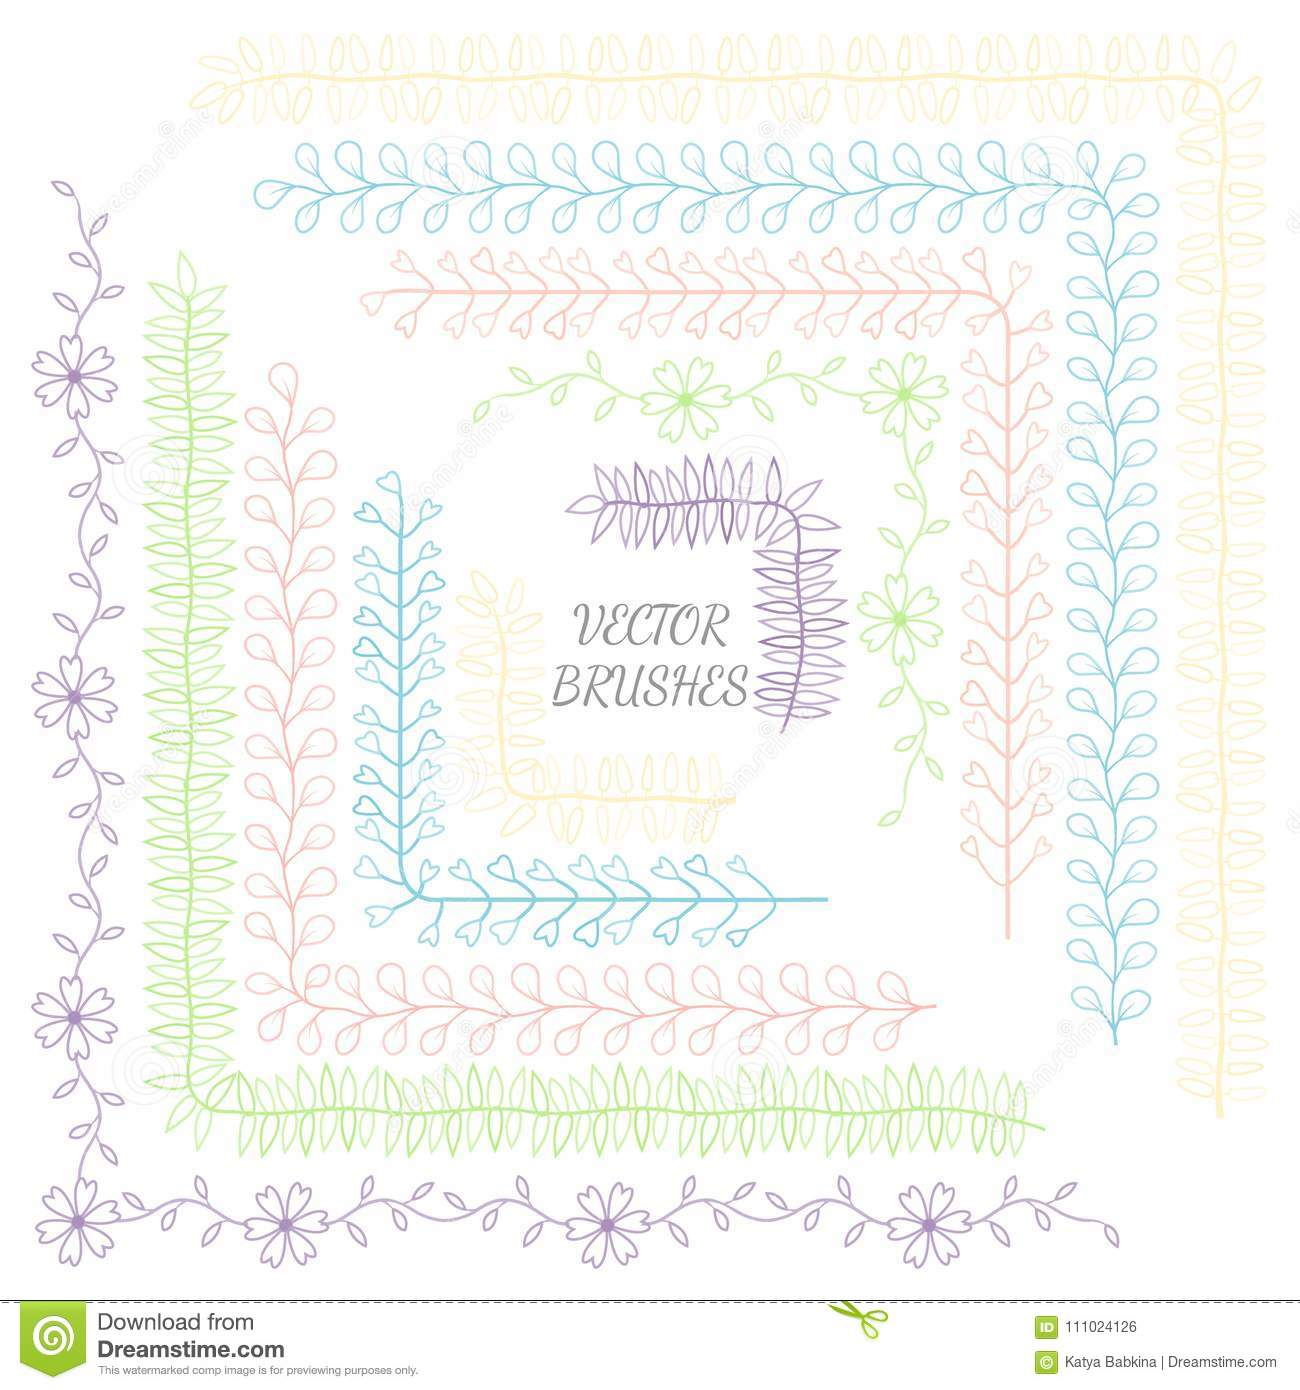 Decorative vector brushes with inner and outer corner tiles.Vector isolate element. Design template. Holiday, artistic decor.